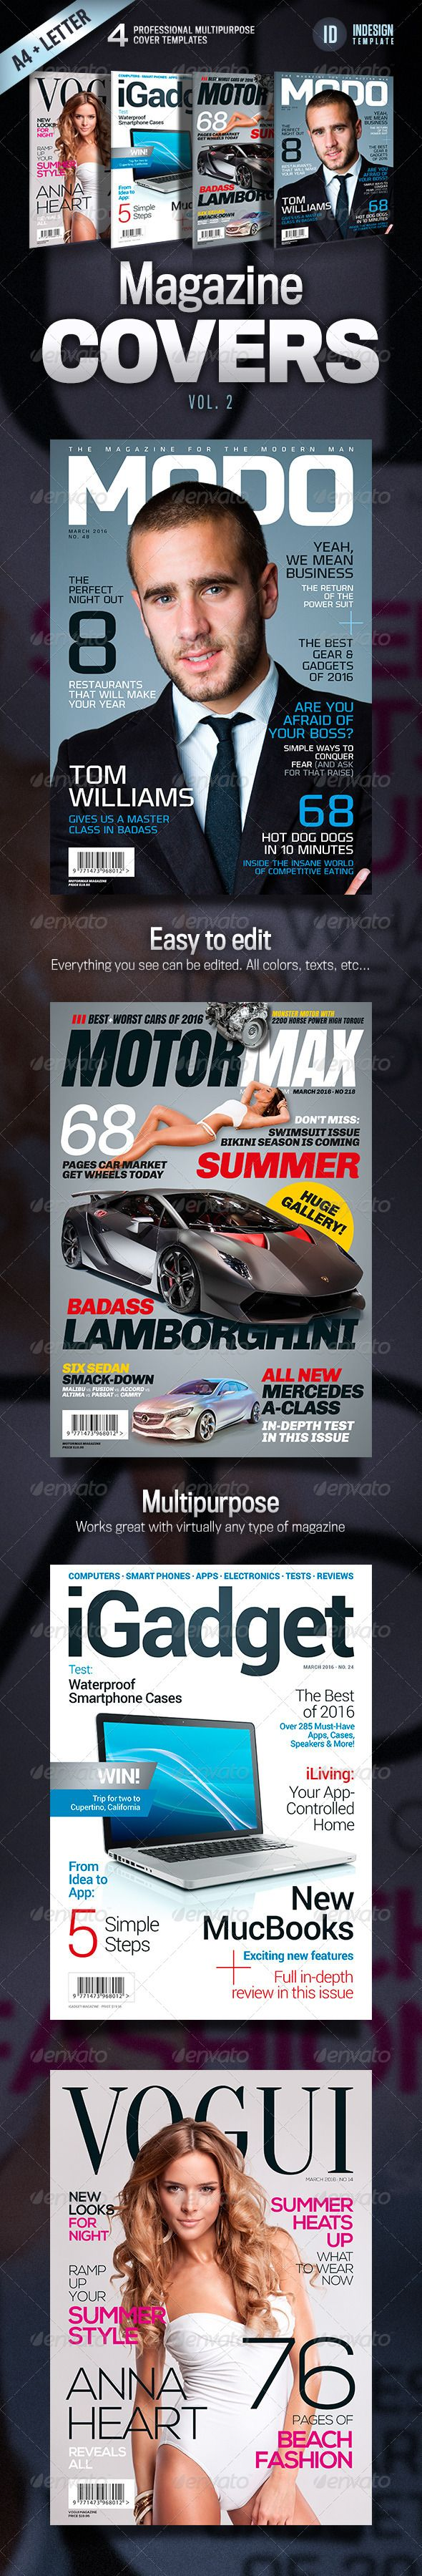 magazine cover template indesign - Ideal.vistalist.co